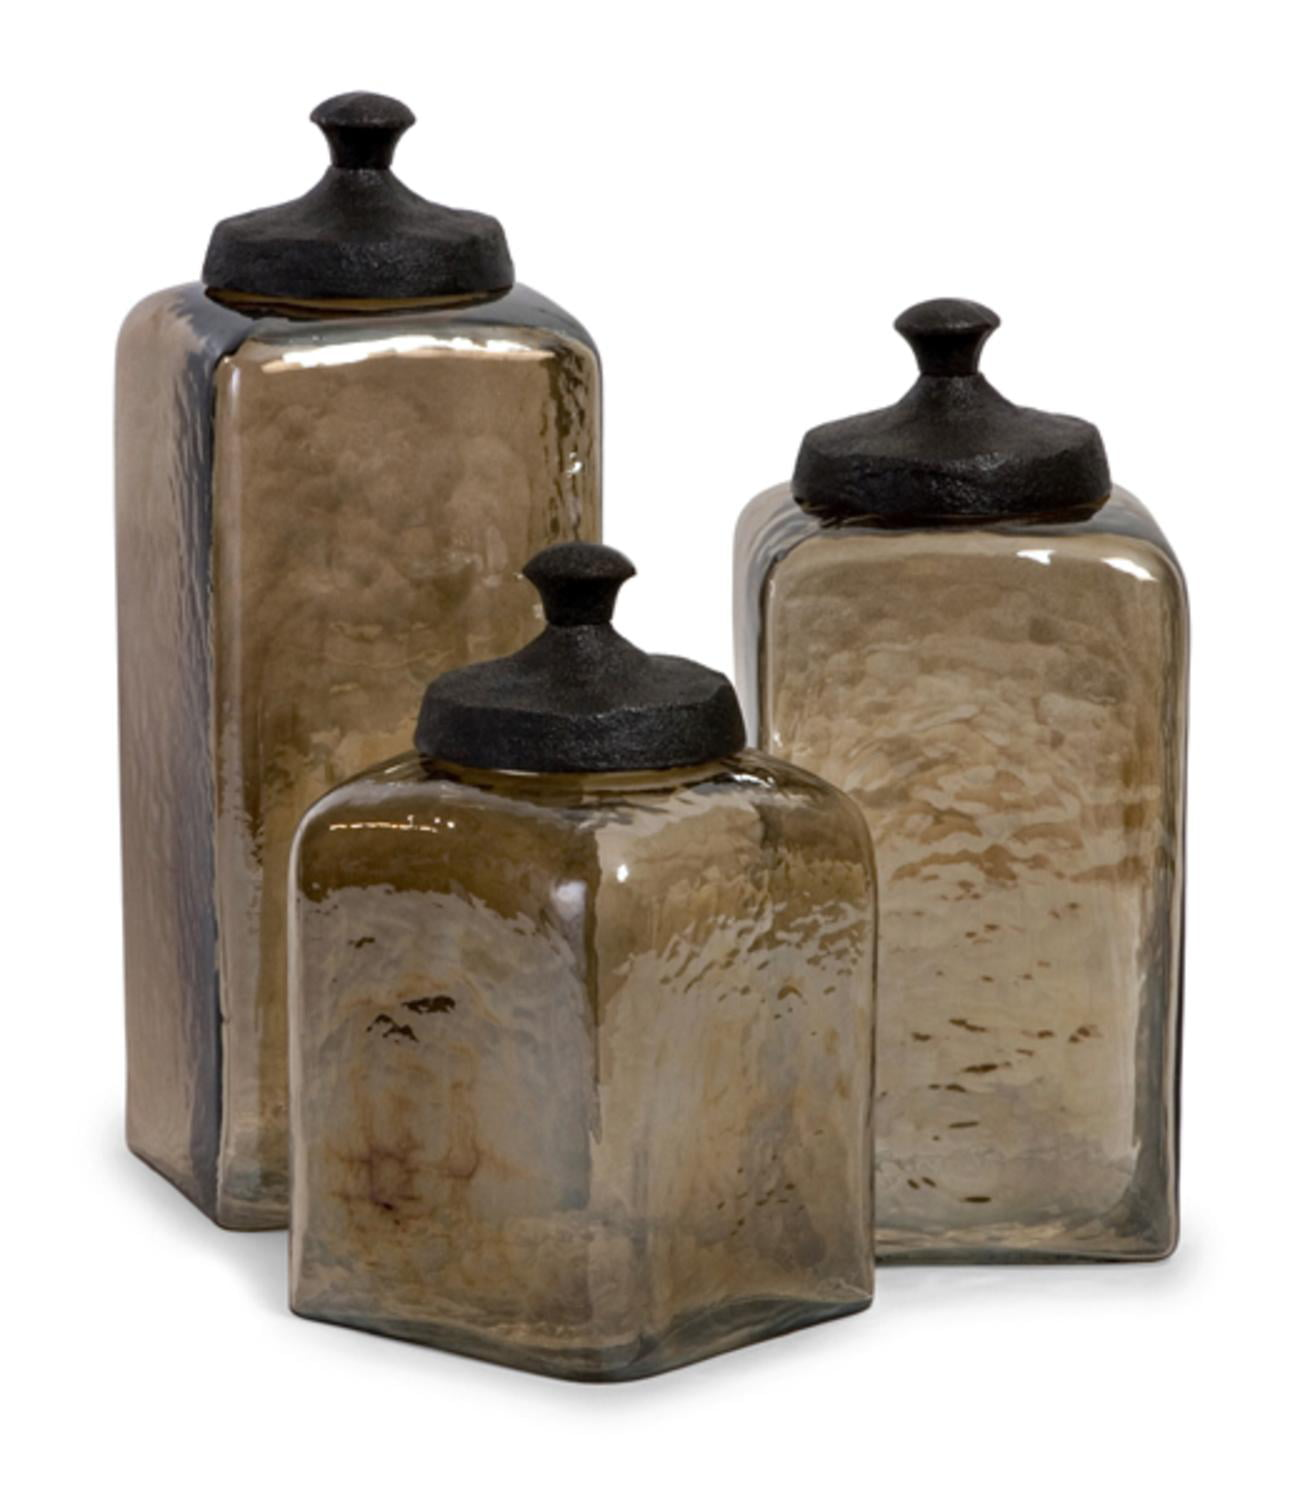 charming Glass Kitchen Canisters Sets Part - 12: Set of 3 Decorative Tan-Tinted Square Kitchen Canisters - Walmart.com